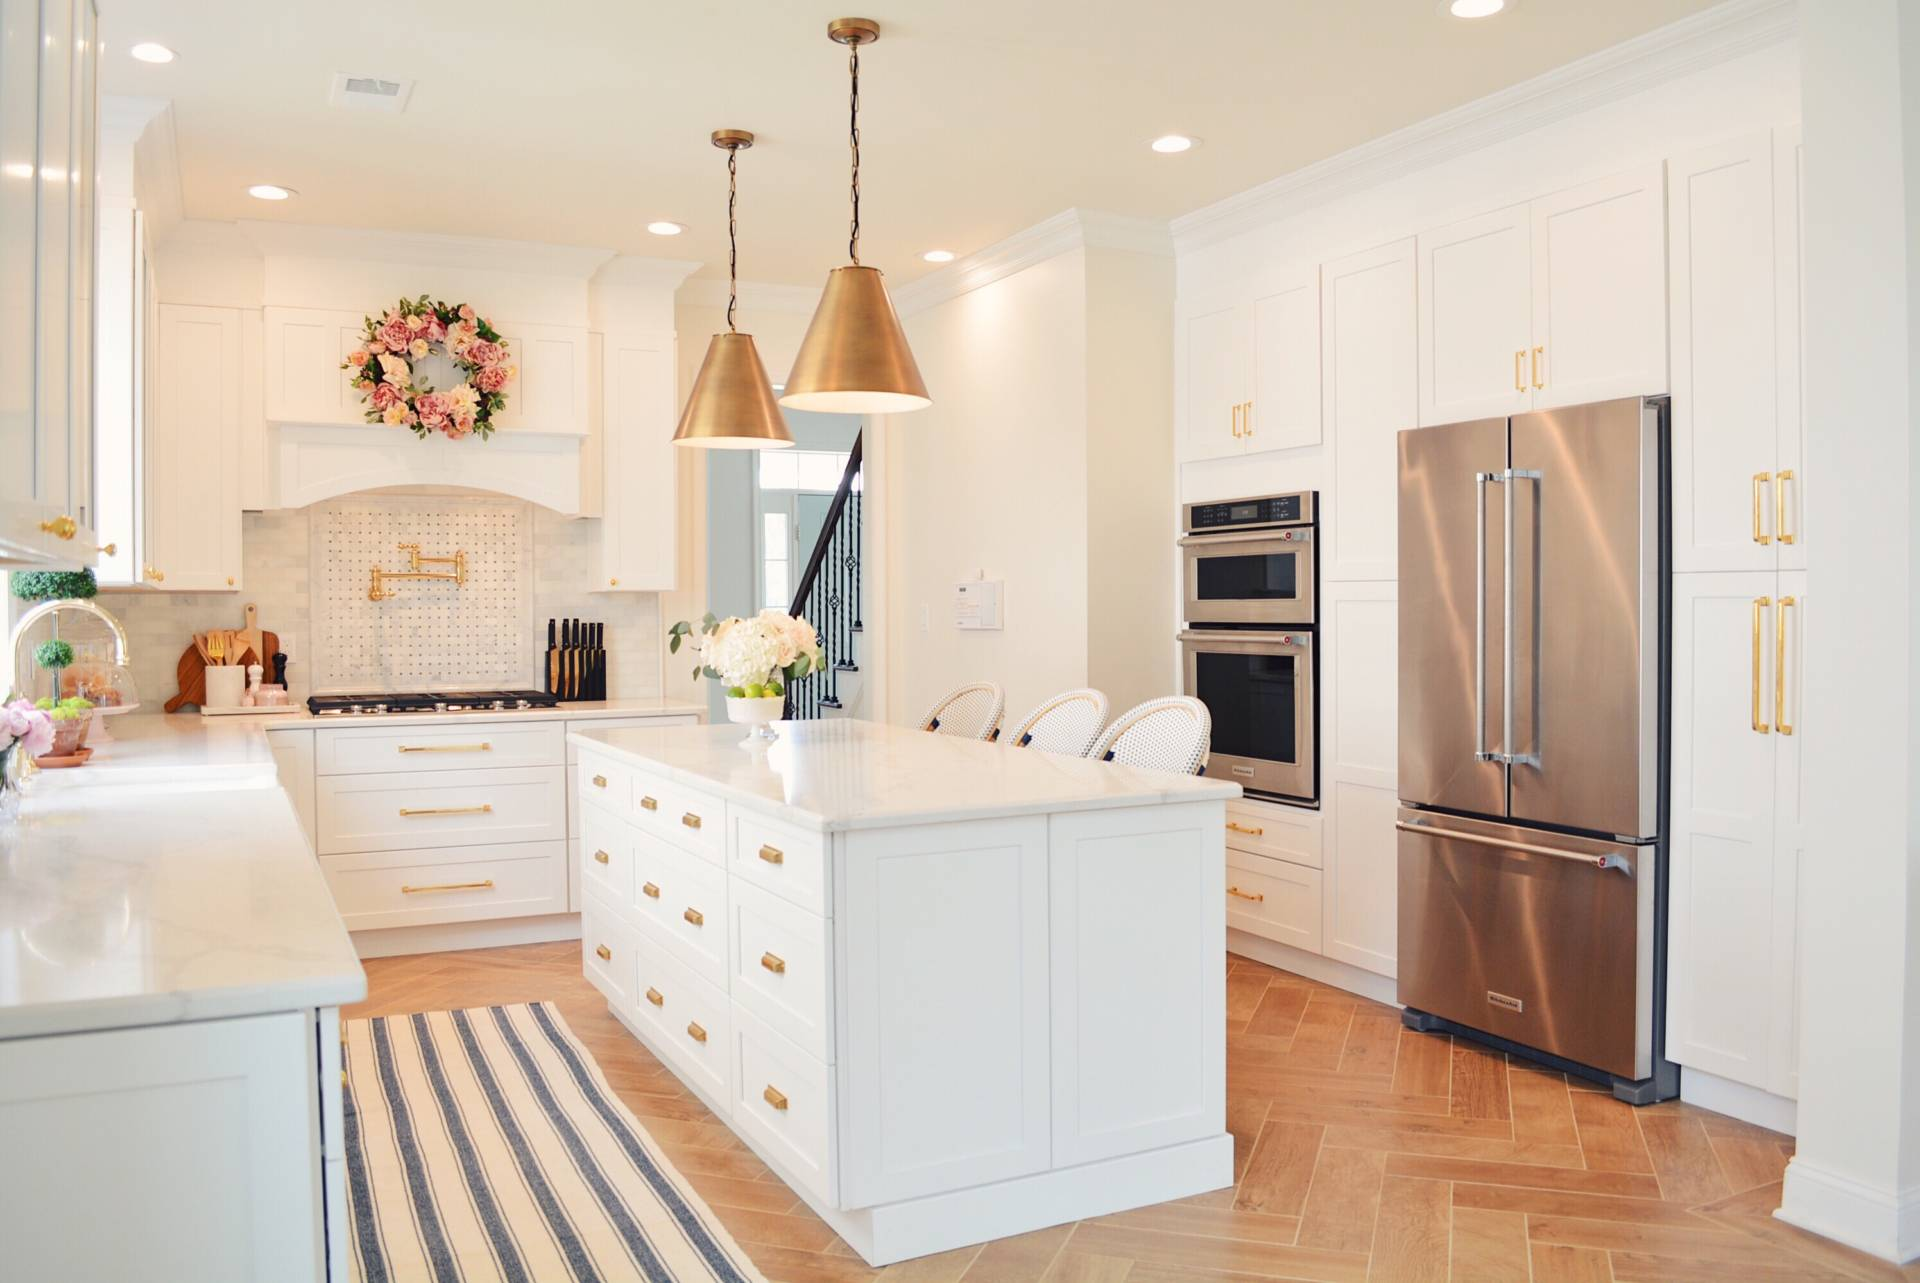 Here\u0027s a look at this light style in the kitchen of thepinkdream.com (one of my fav bloggers) in her new \u201d classic white kitchen remodel\u201c. & How to Update Kitchen Lighting on a Budget - The Leslie Style